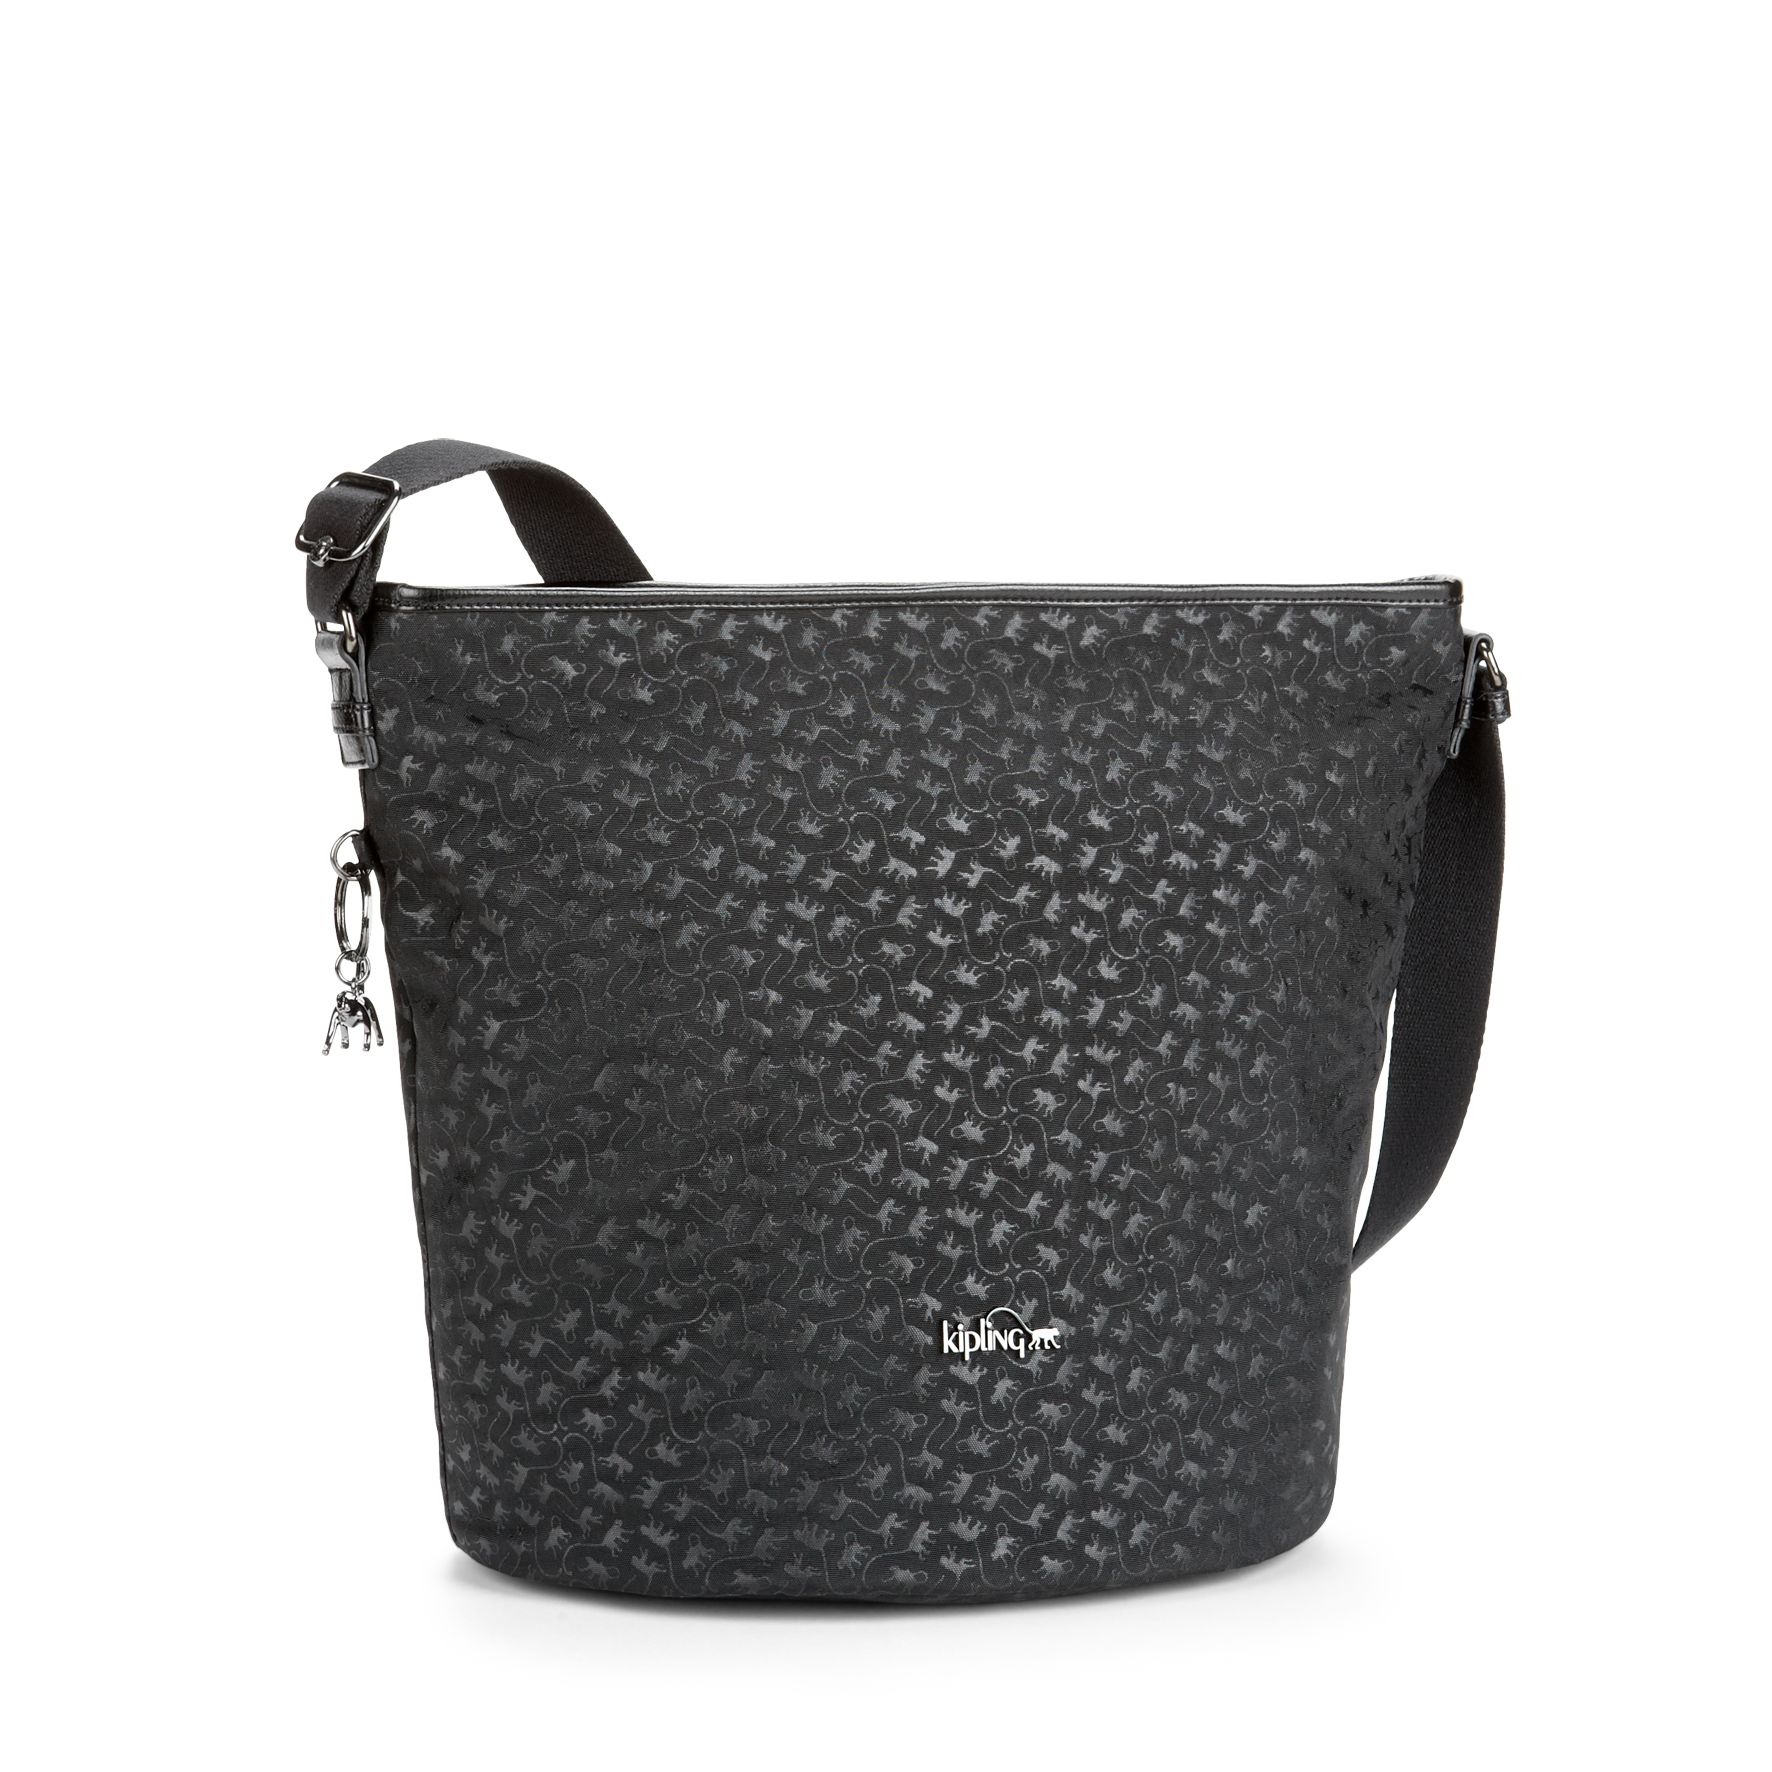 Yestin shoulder bag